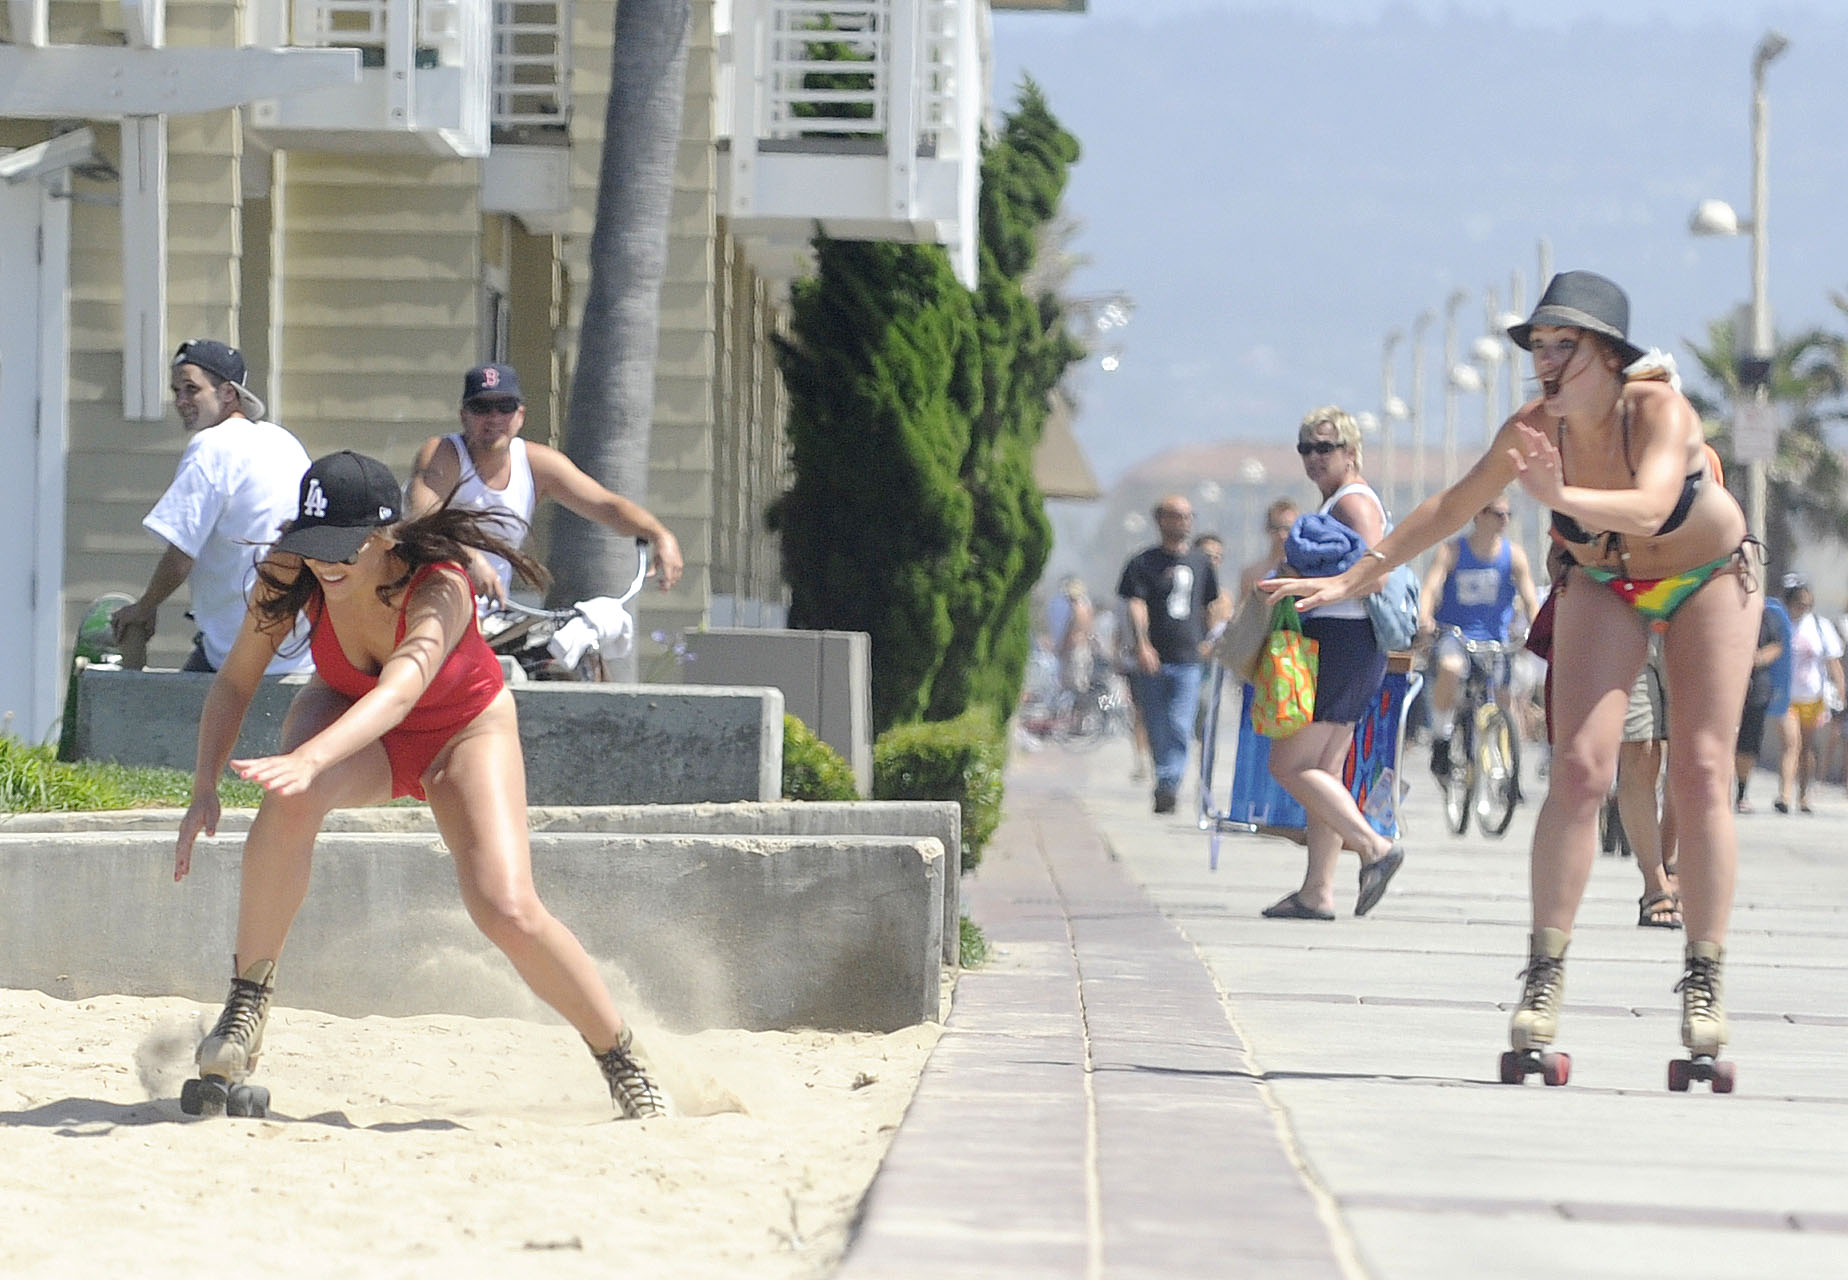 Imogen Thomas 2011 : Imogen Thomas Swimsuit Candids in Santa Monica-09